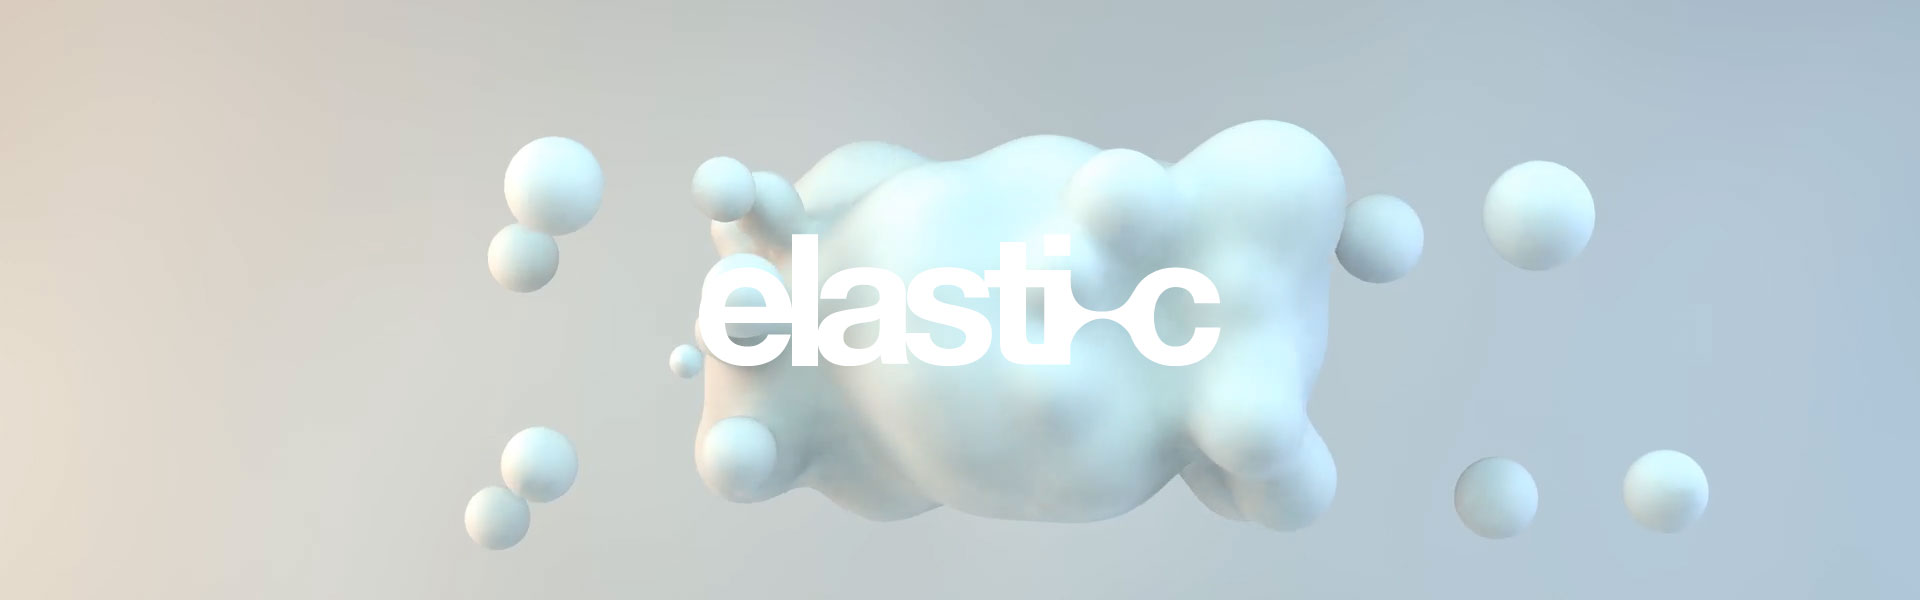 Elastic Video Ident image